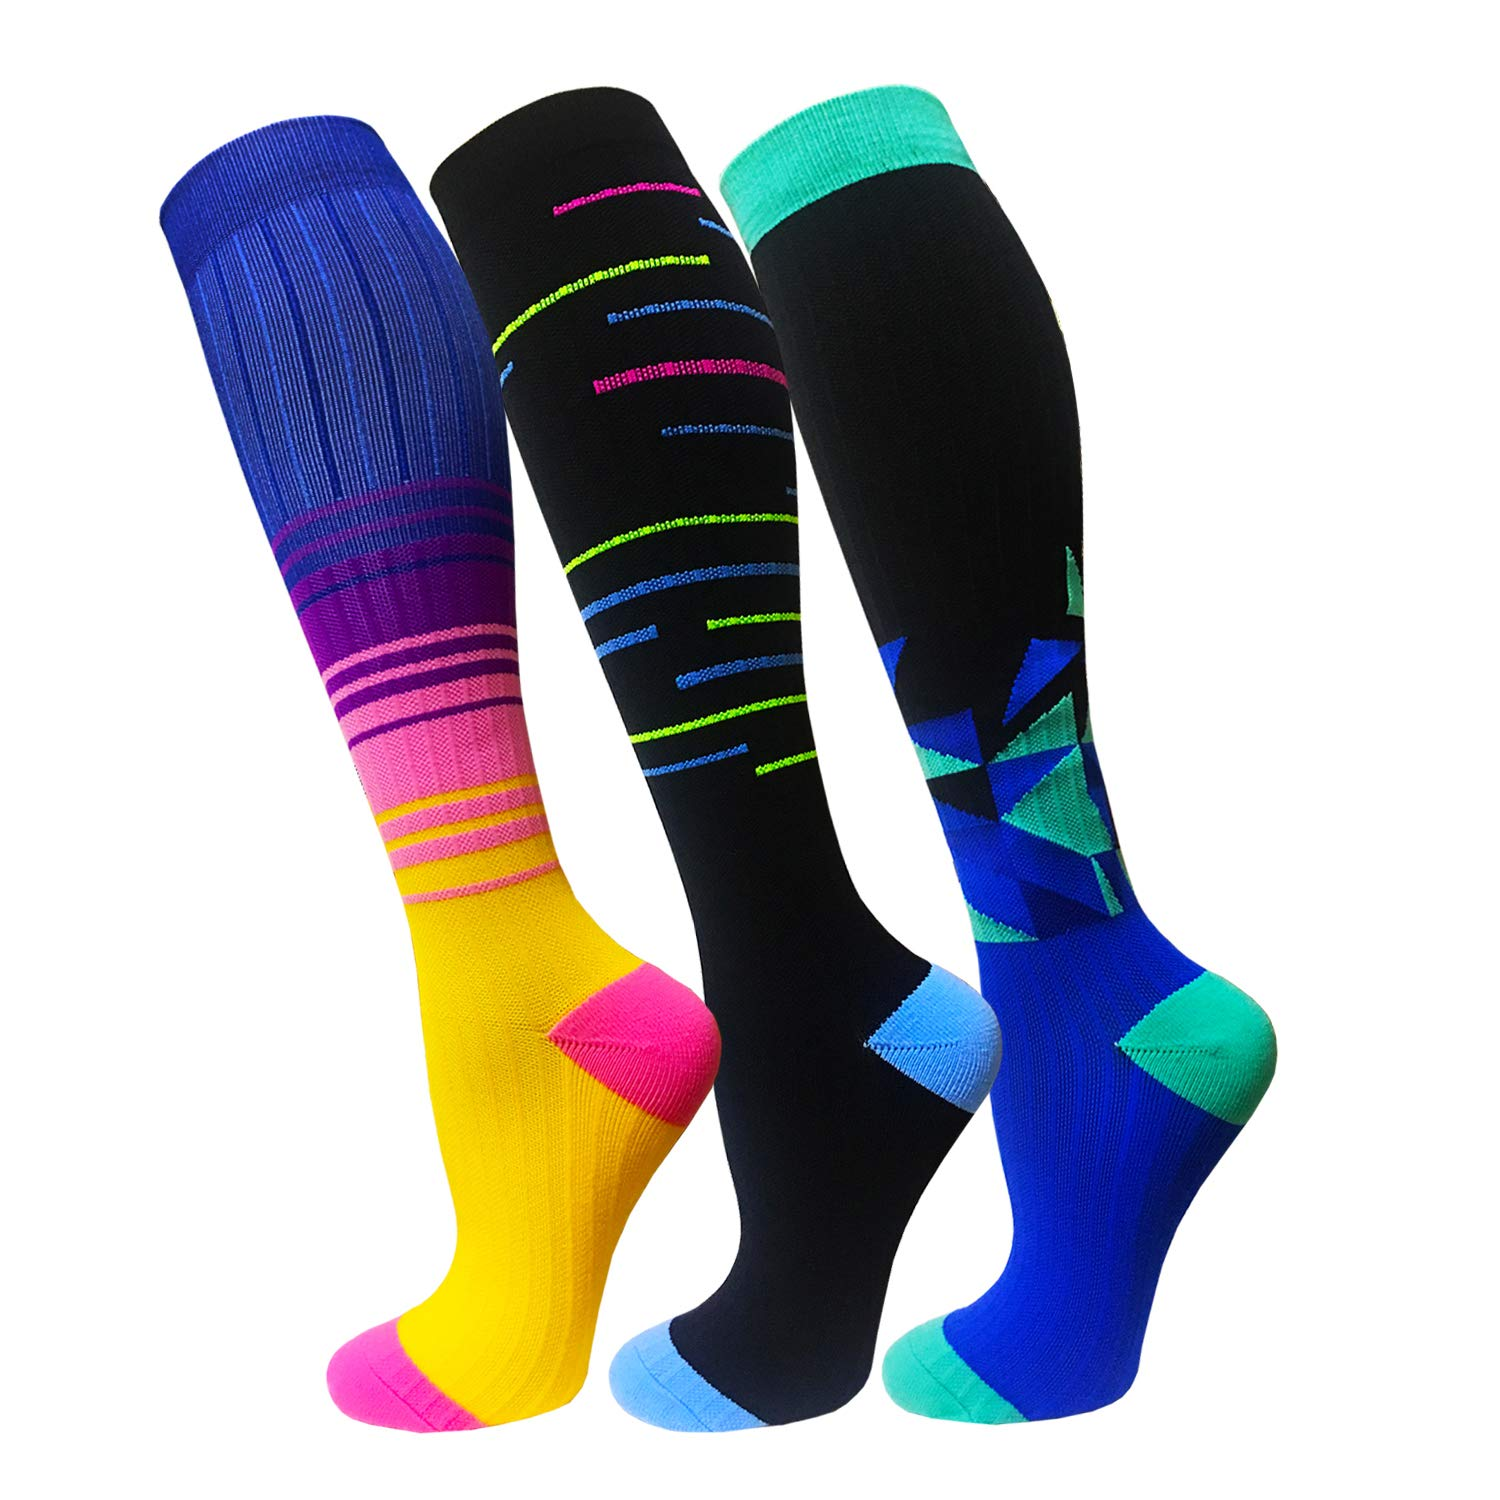 Compression Socks For Men & Women(3 Pairs)- Best For Running,Athletic,Medical,Pregnancy and Travel -15-20mmHg (S/M, Multicoloured 8)